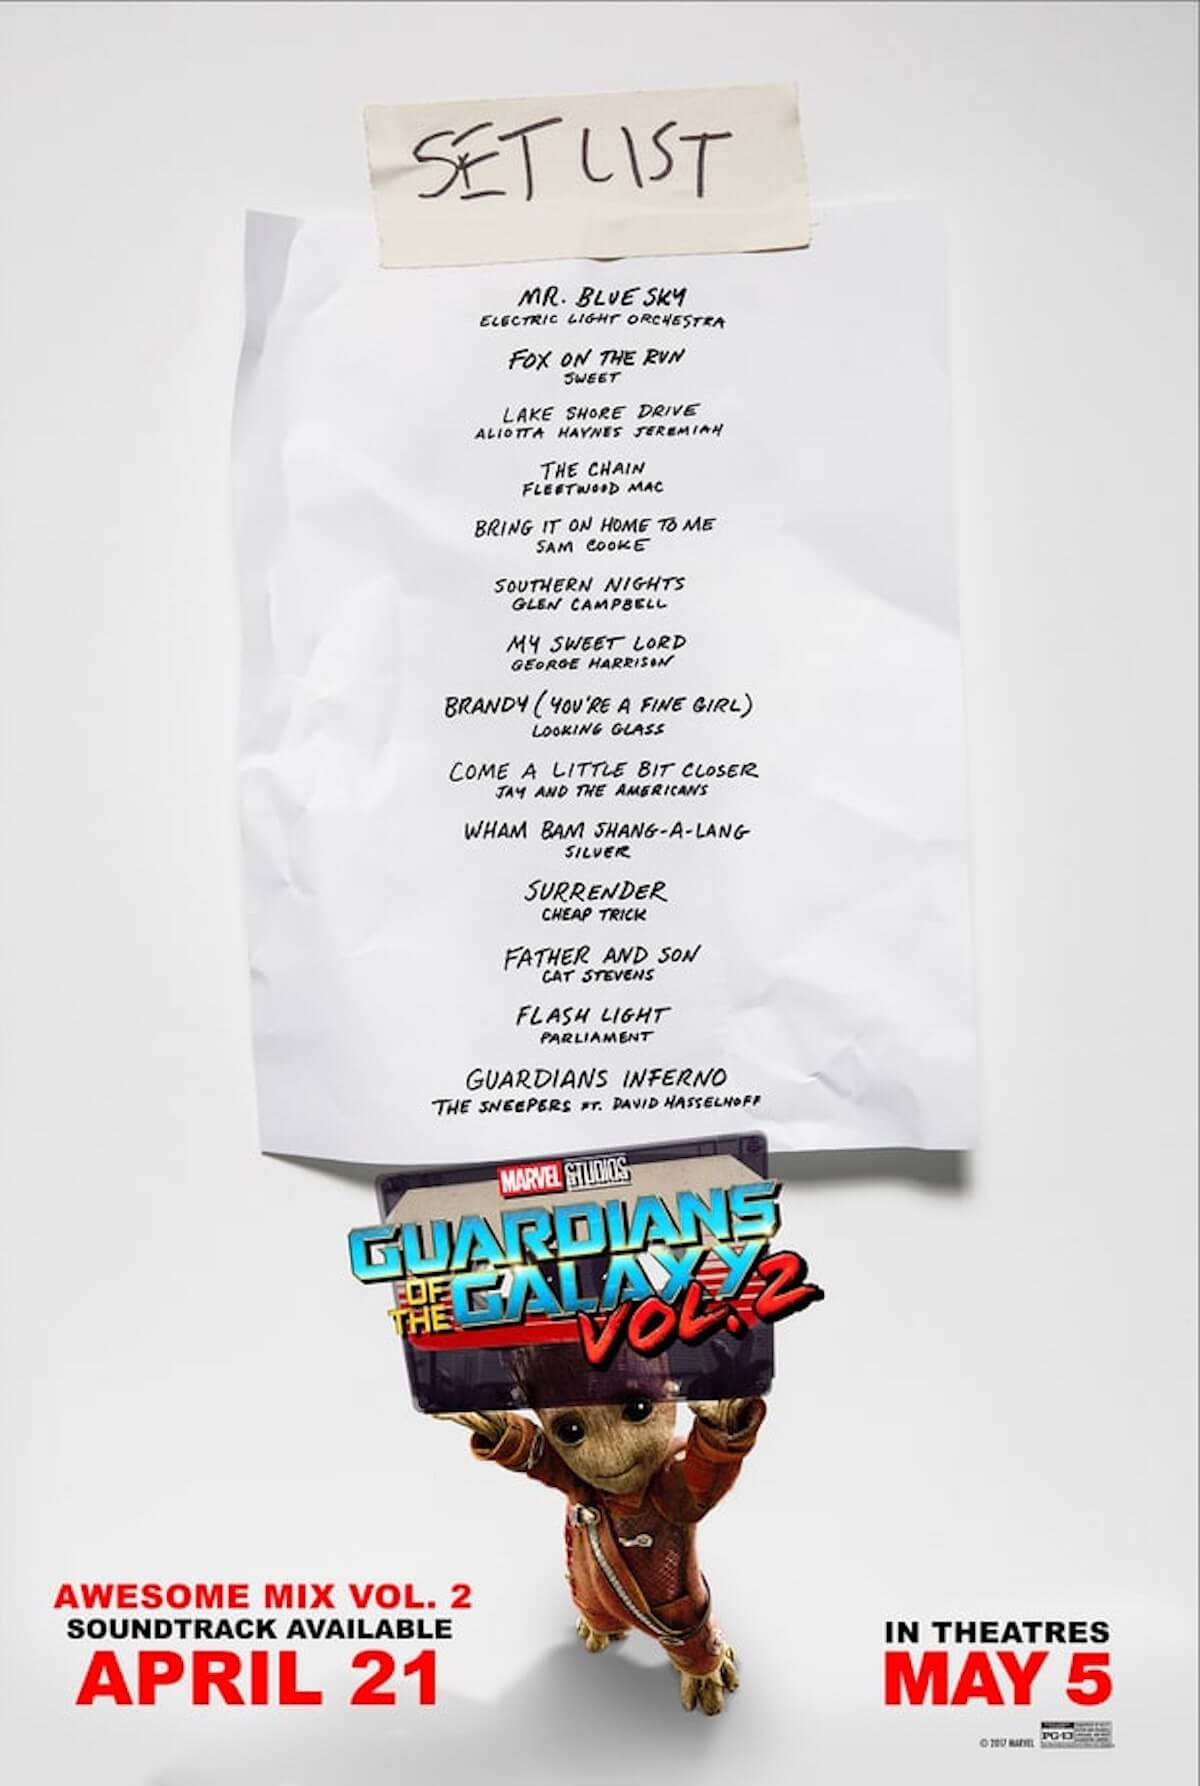 Guardians of the galaxy 2 soundtrack list